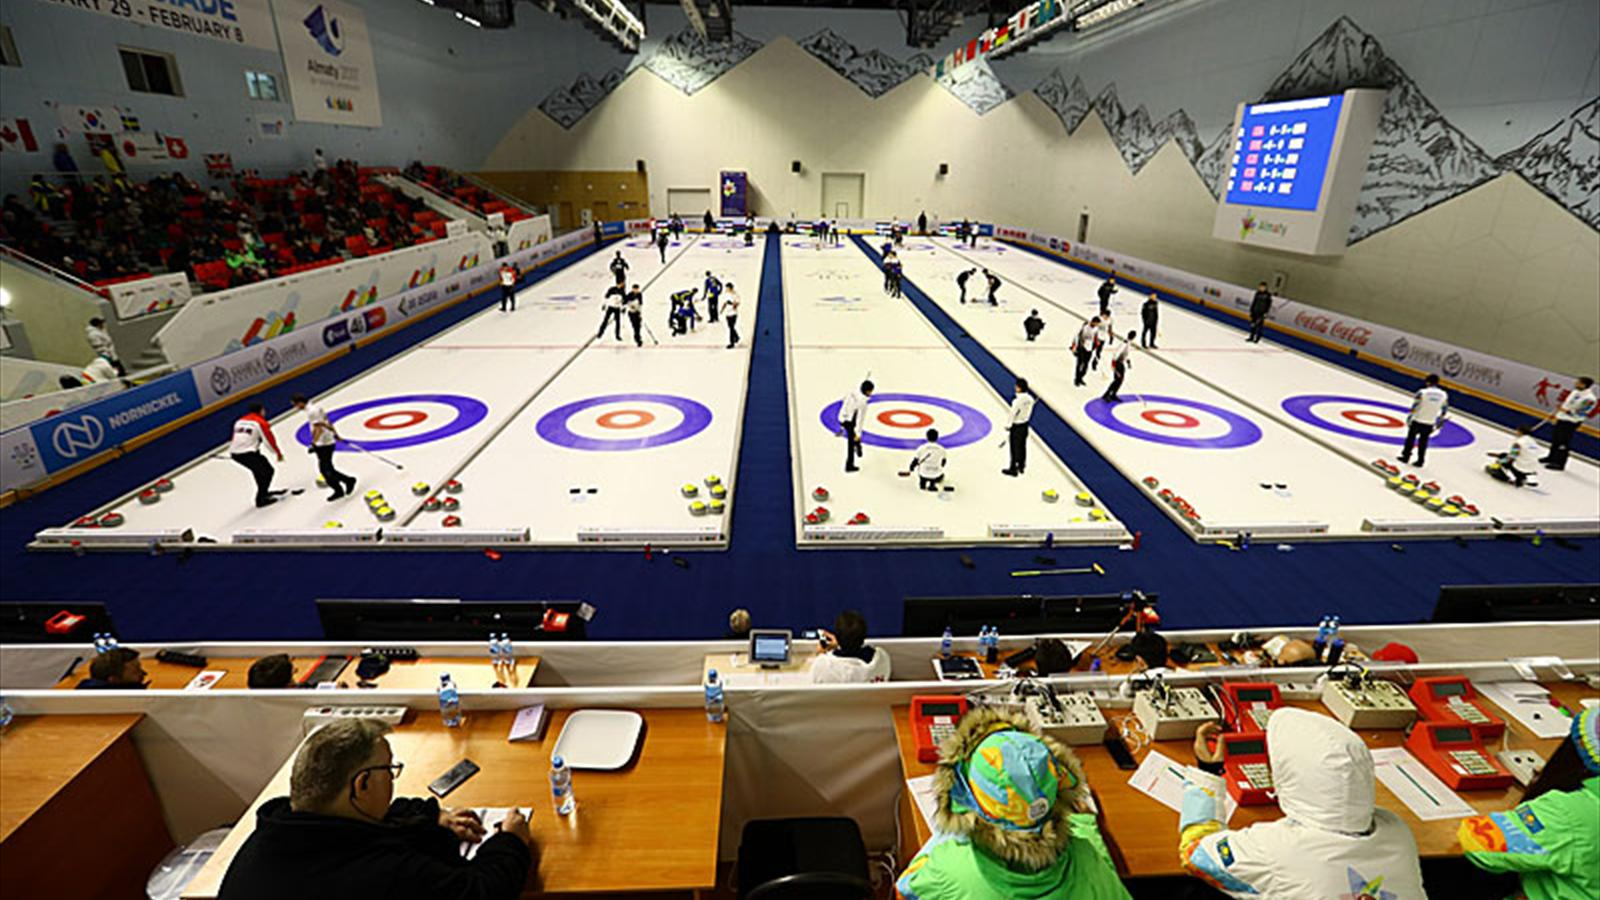 Wualmaty2017 update curling day 6 university sports - University league tables french ...